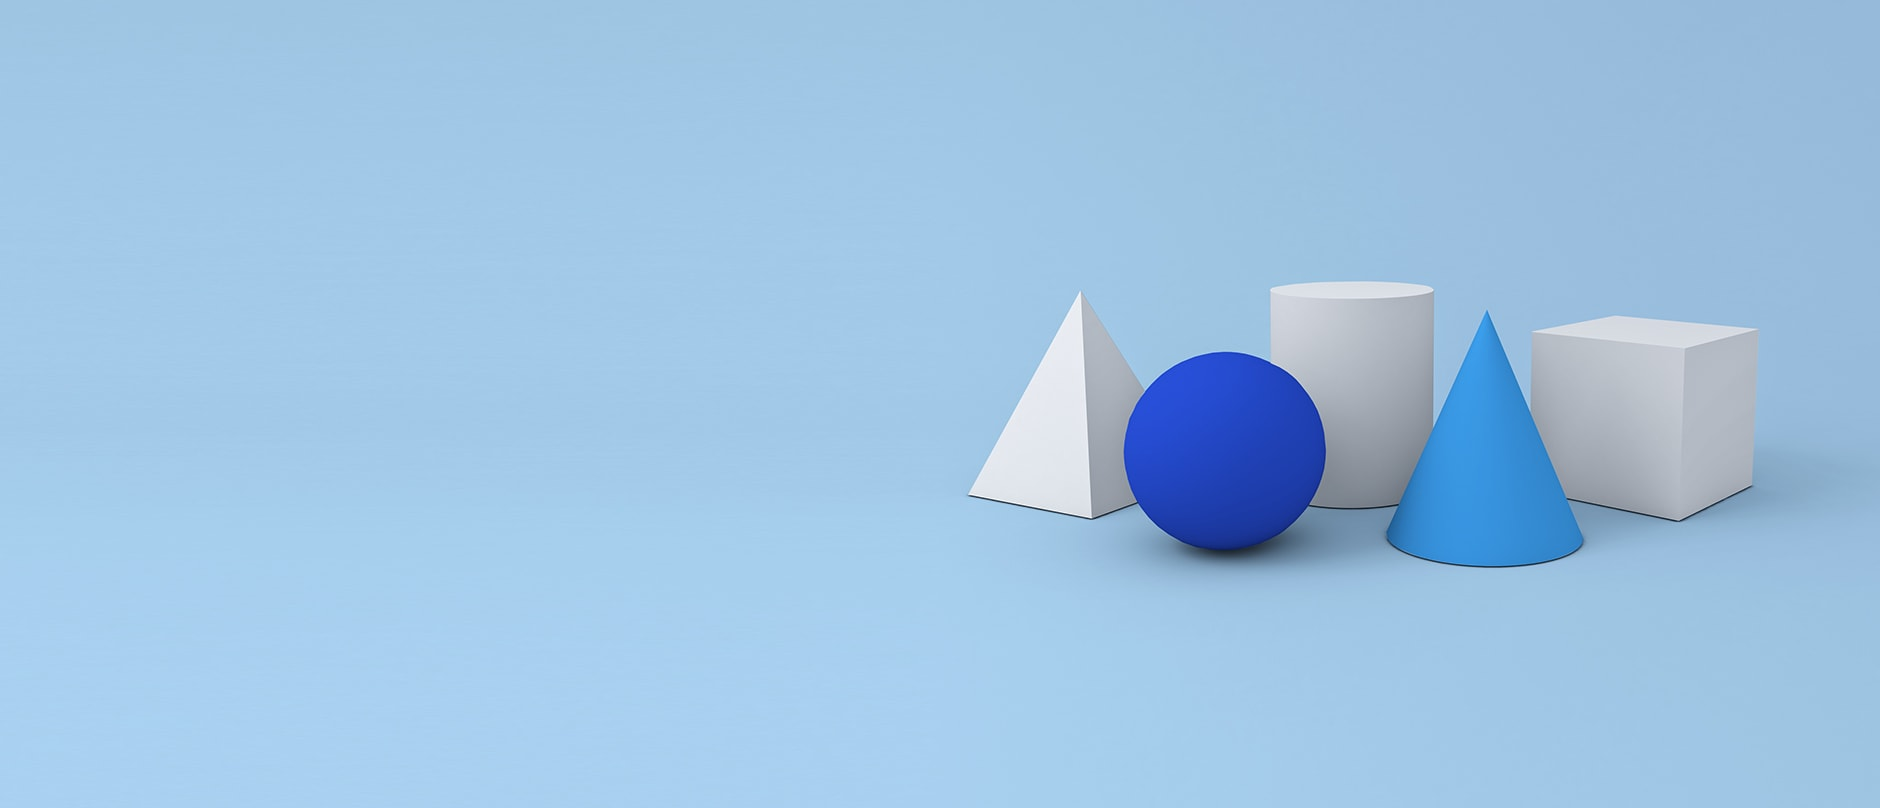 blue and white 3D shapes